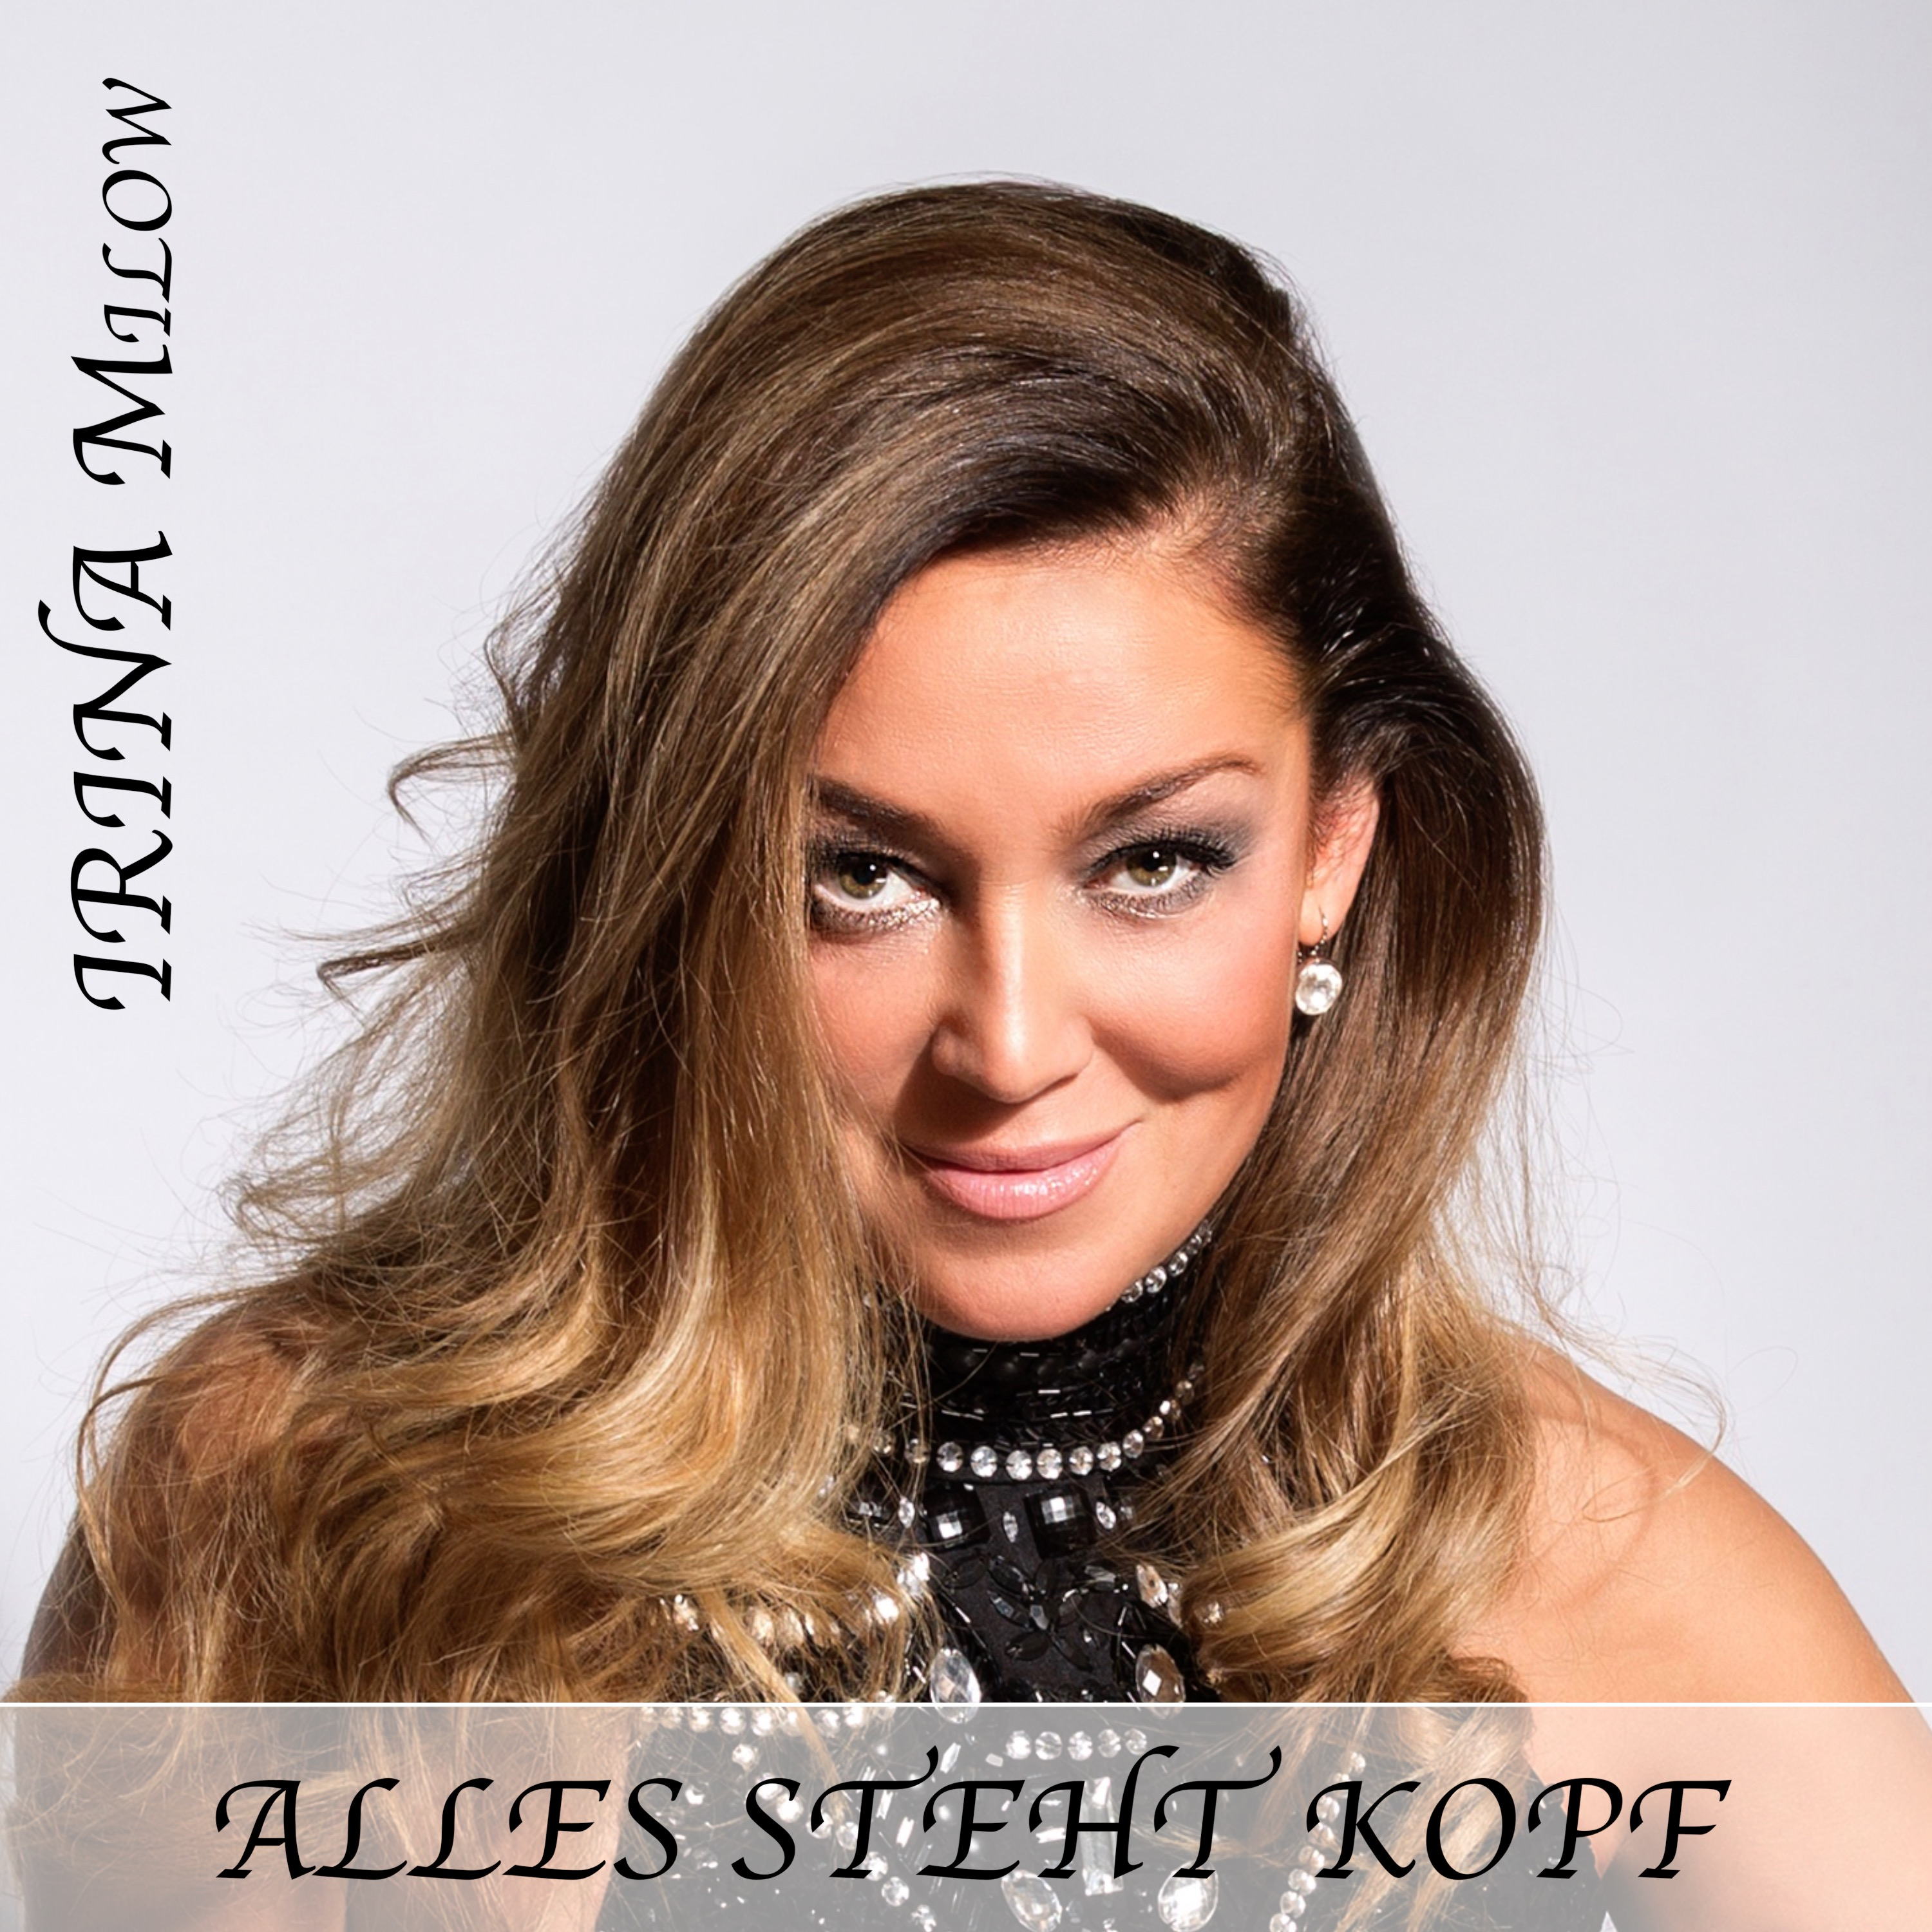 IRINA MILOW * Alles steht Kopf (Single)